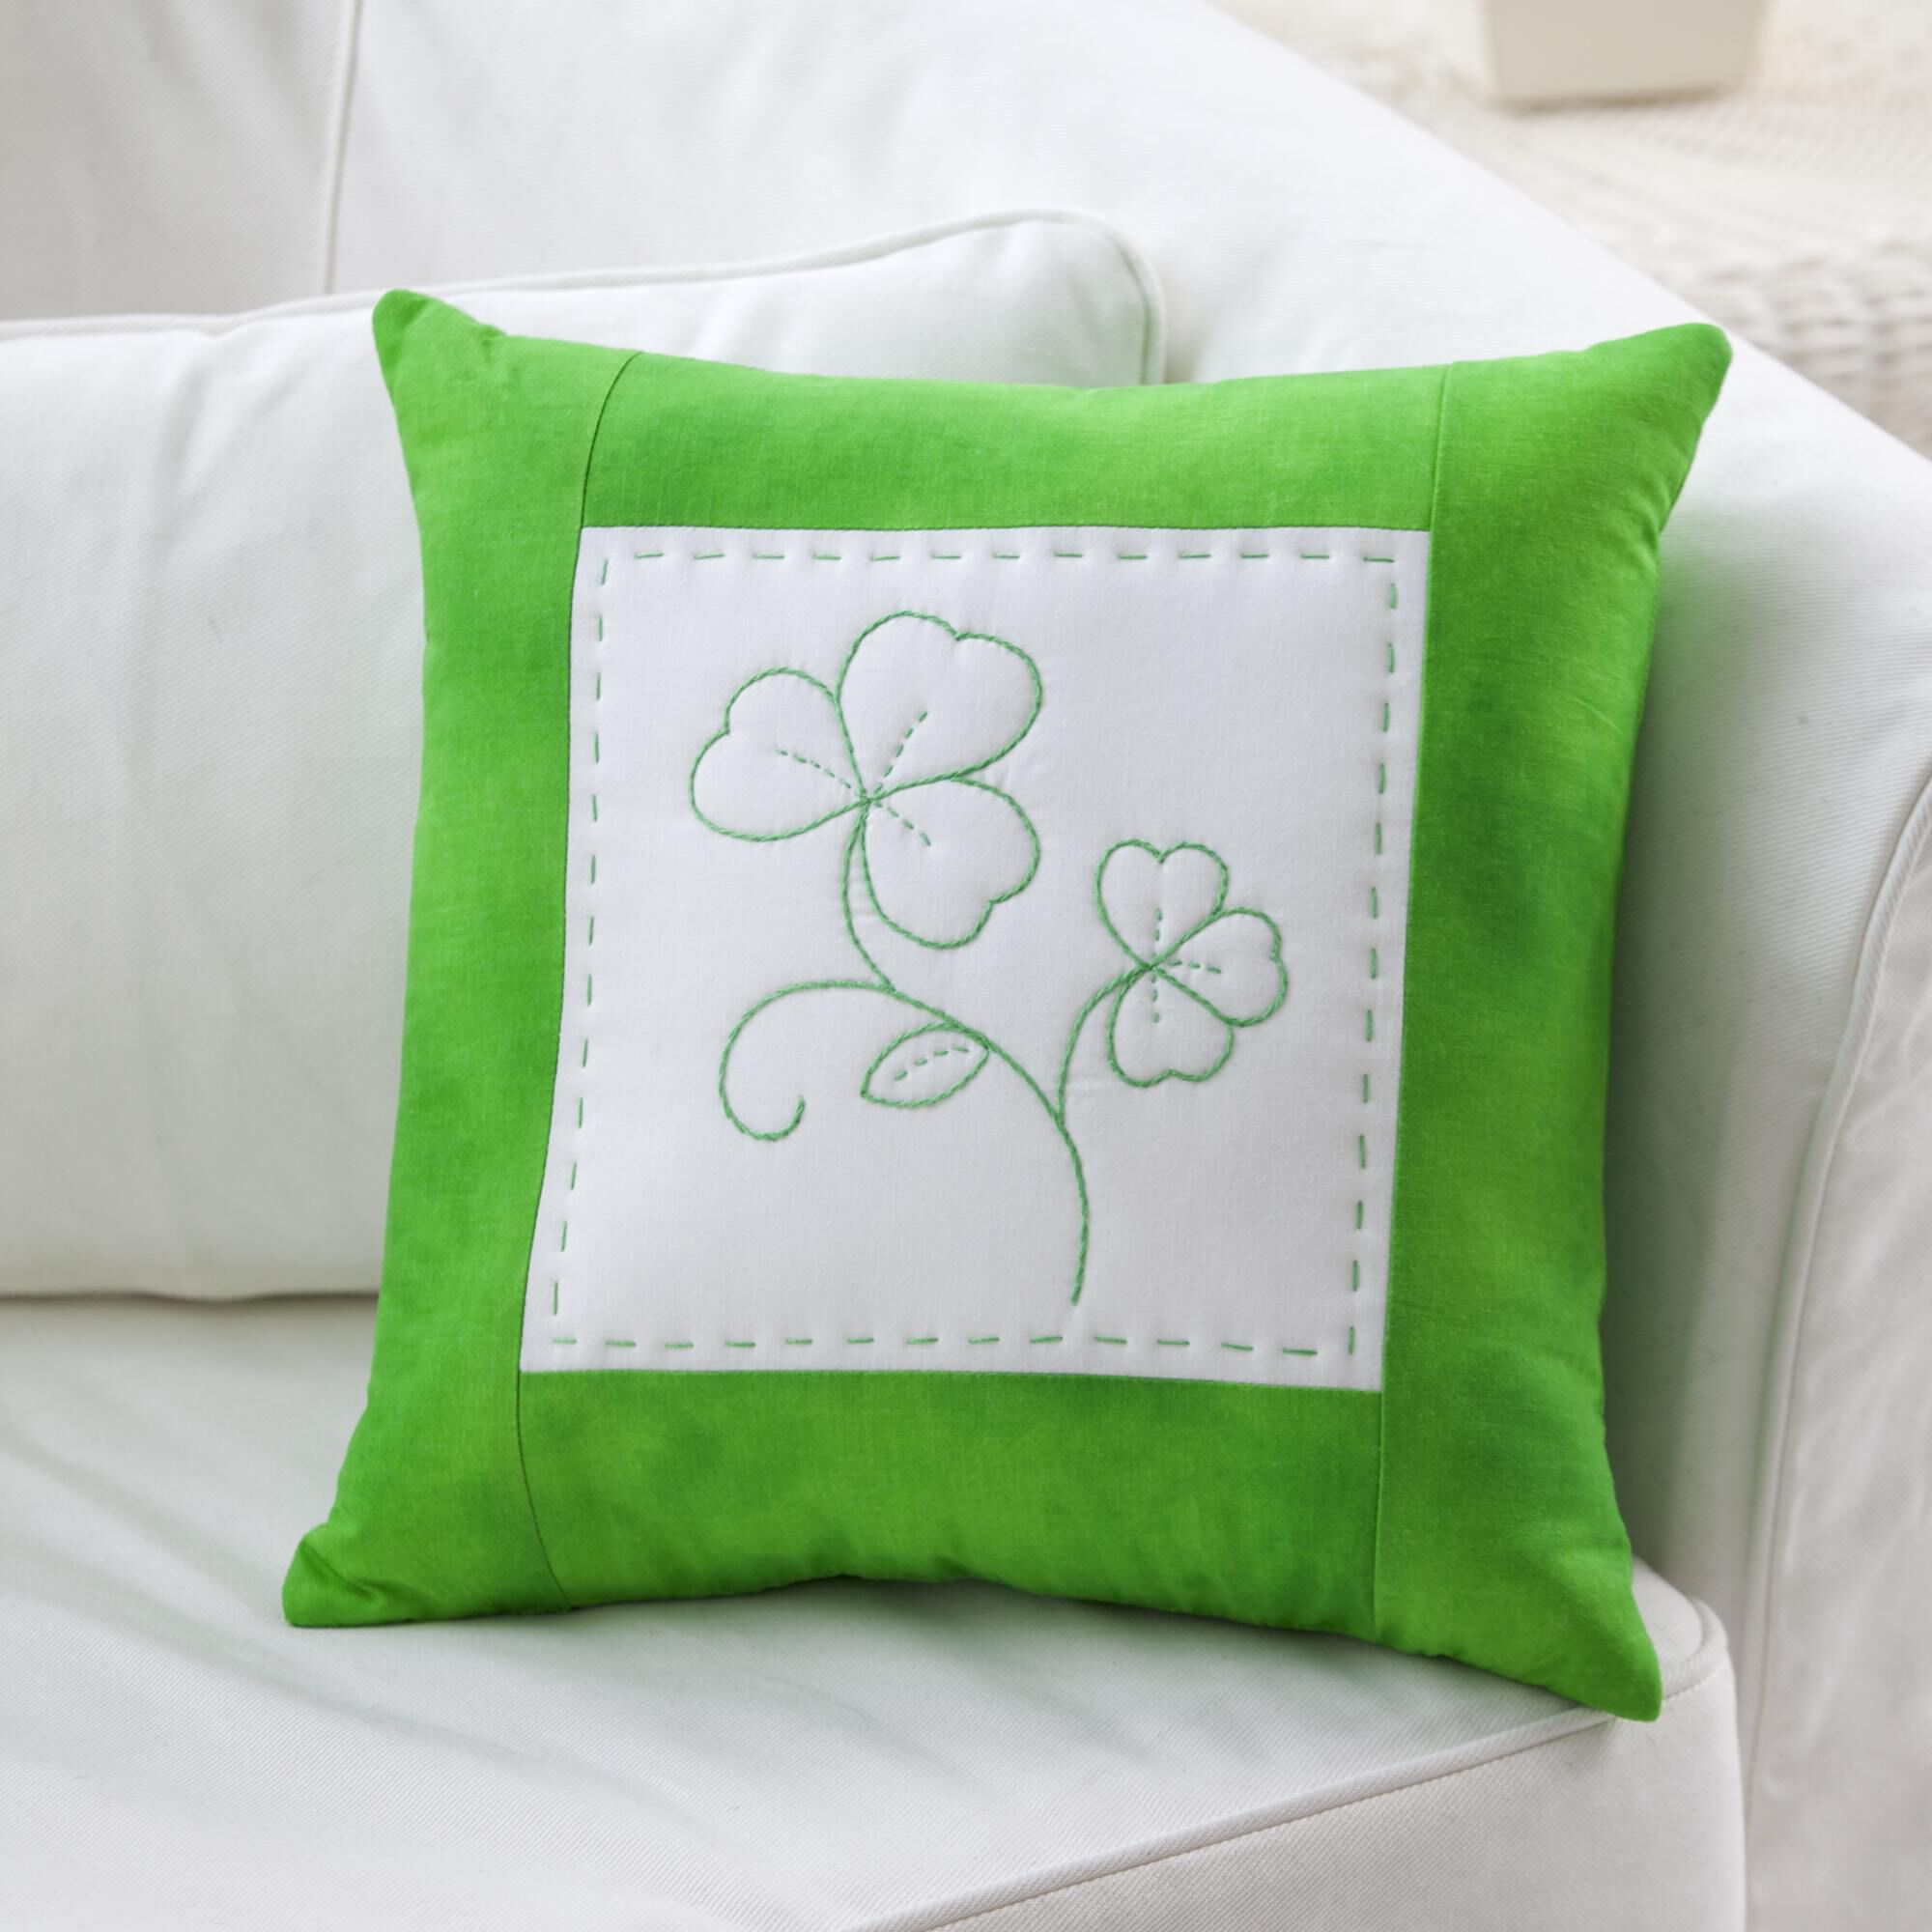 Shamrock Greenwork Pillow | Easy St Patrick's Day Decorations | Sewing Projects | Featured